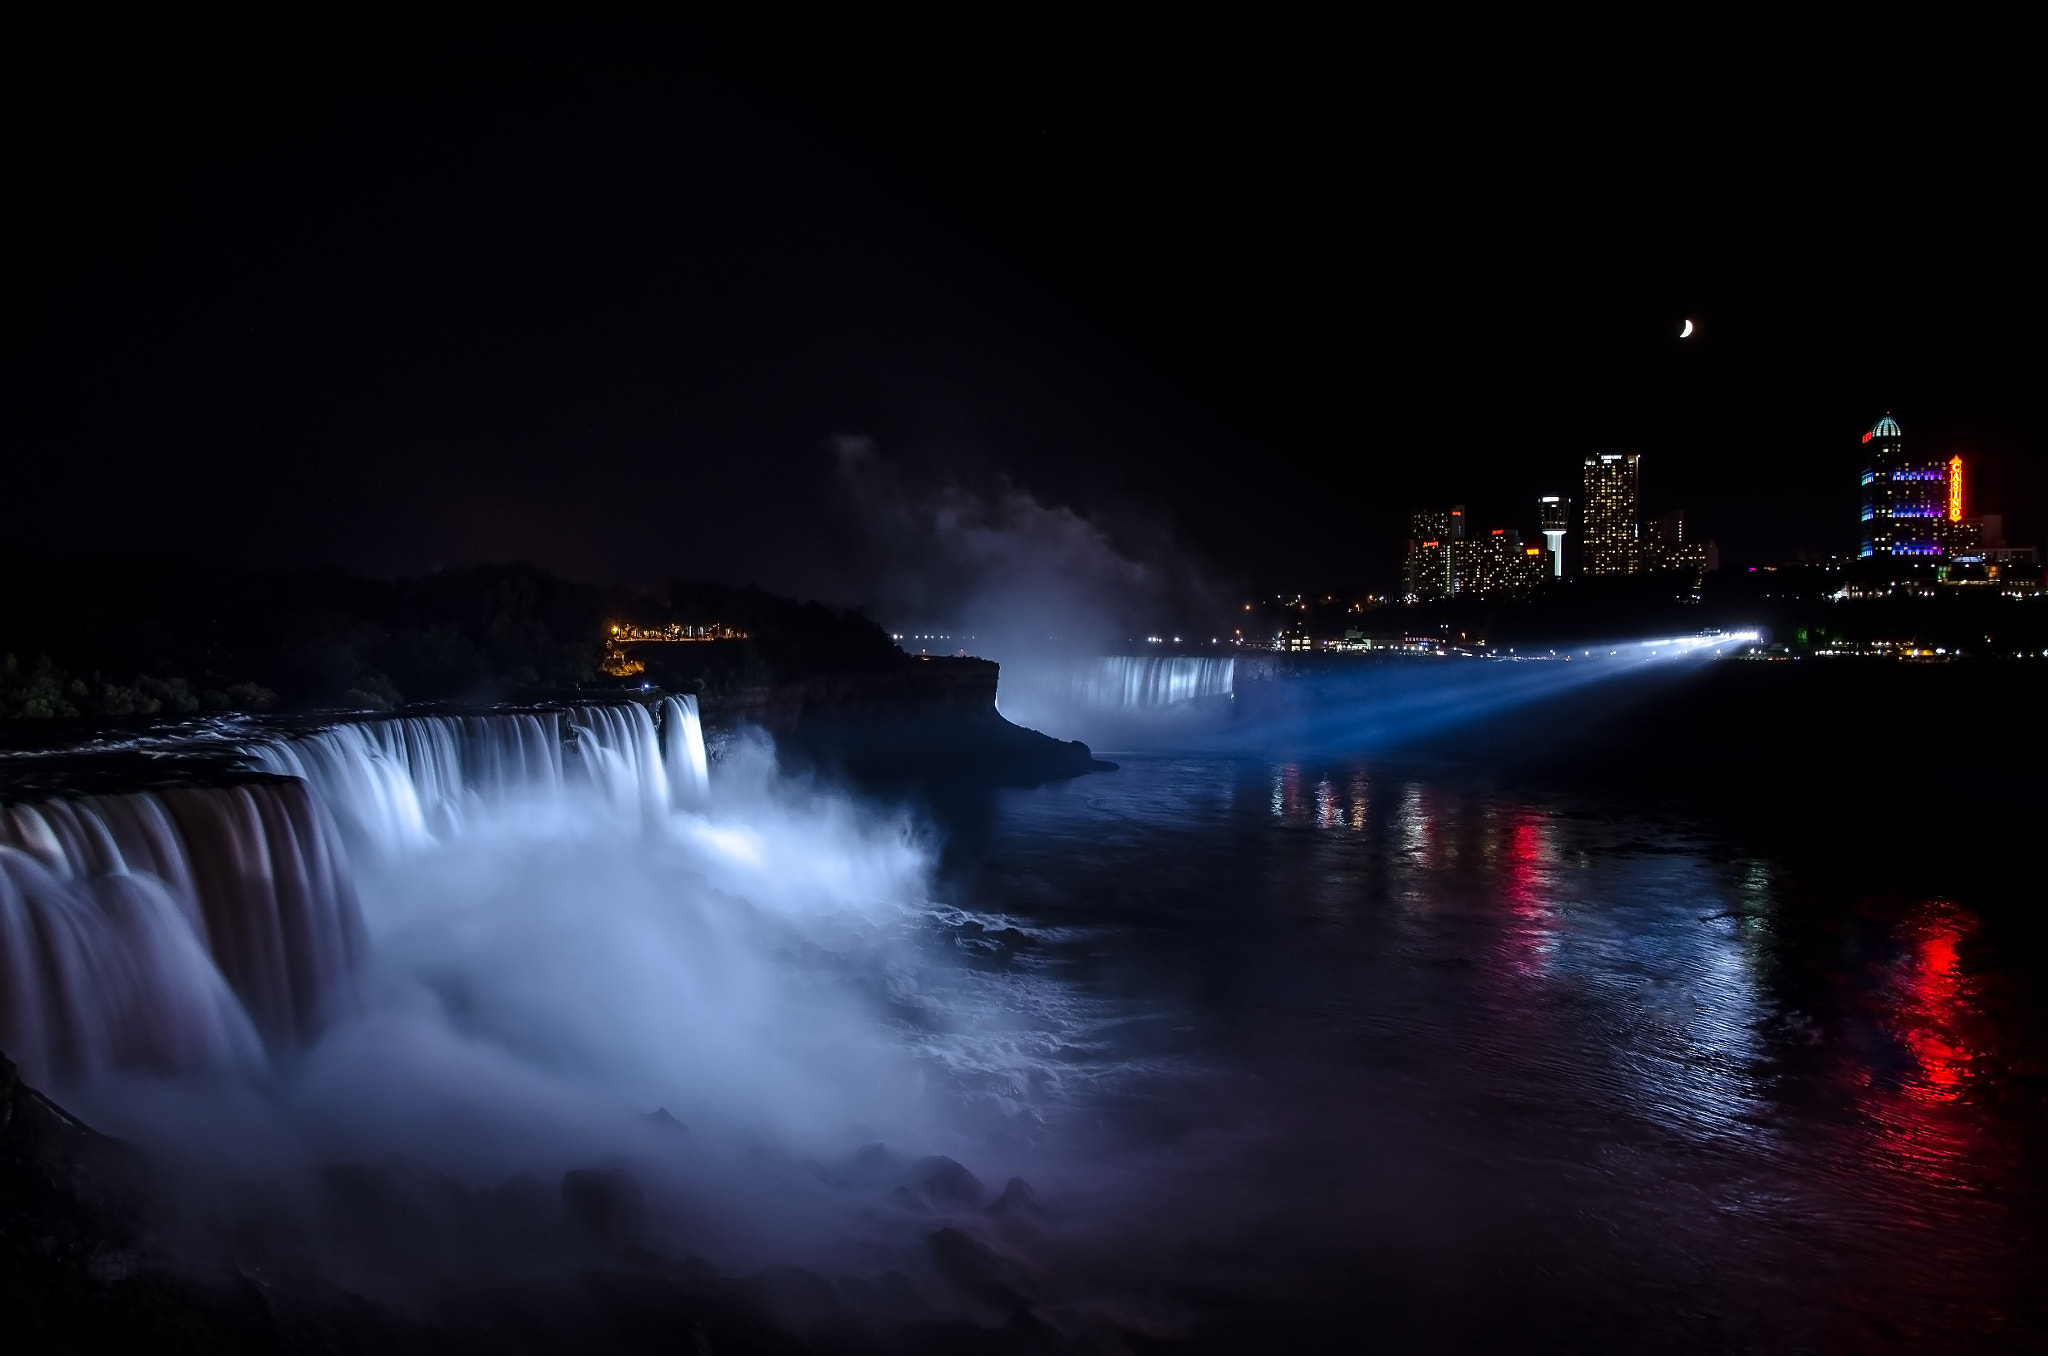 Photograph Niagara at Night by Kenny Alevxey on 500px